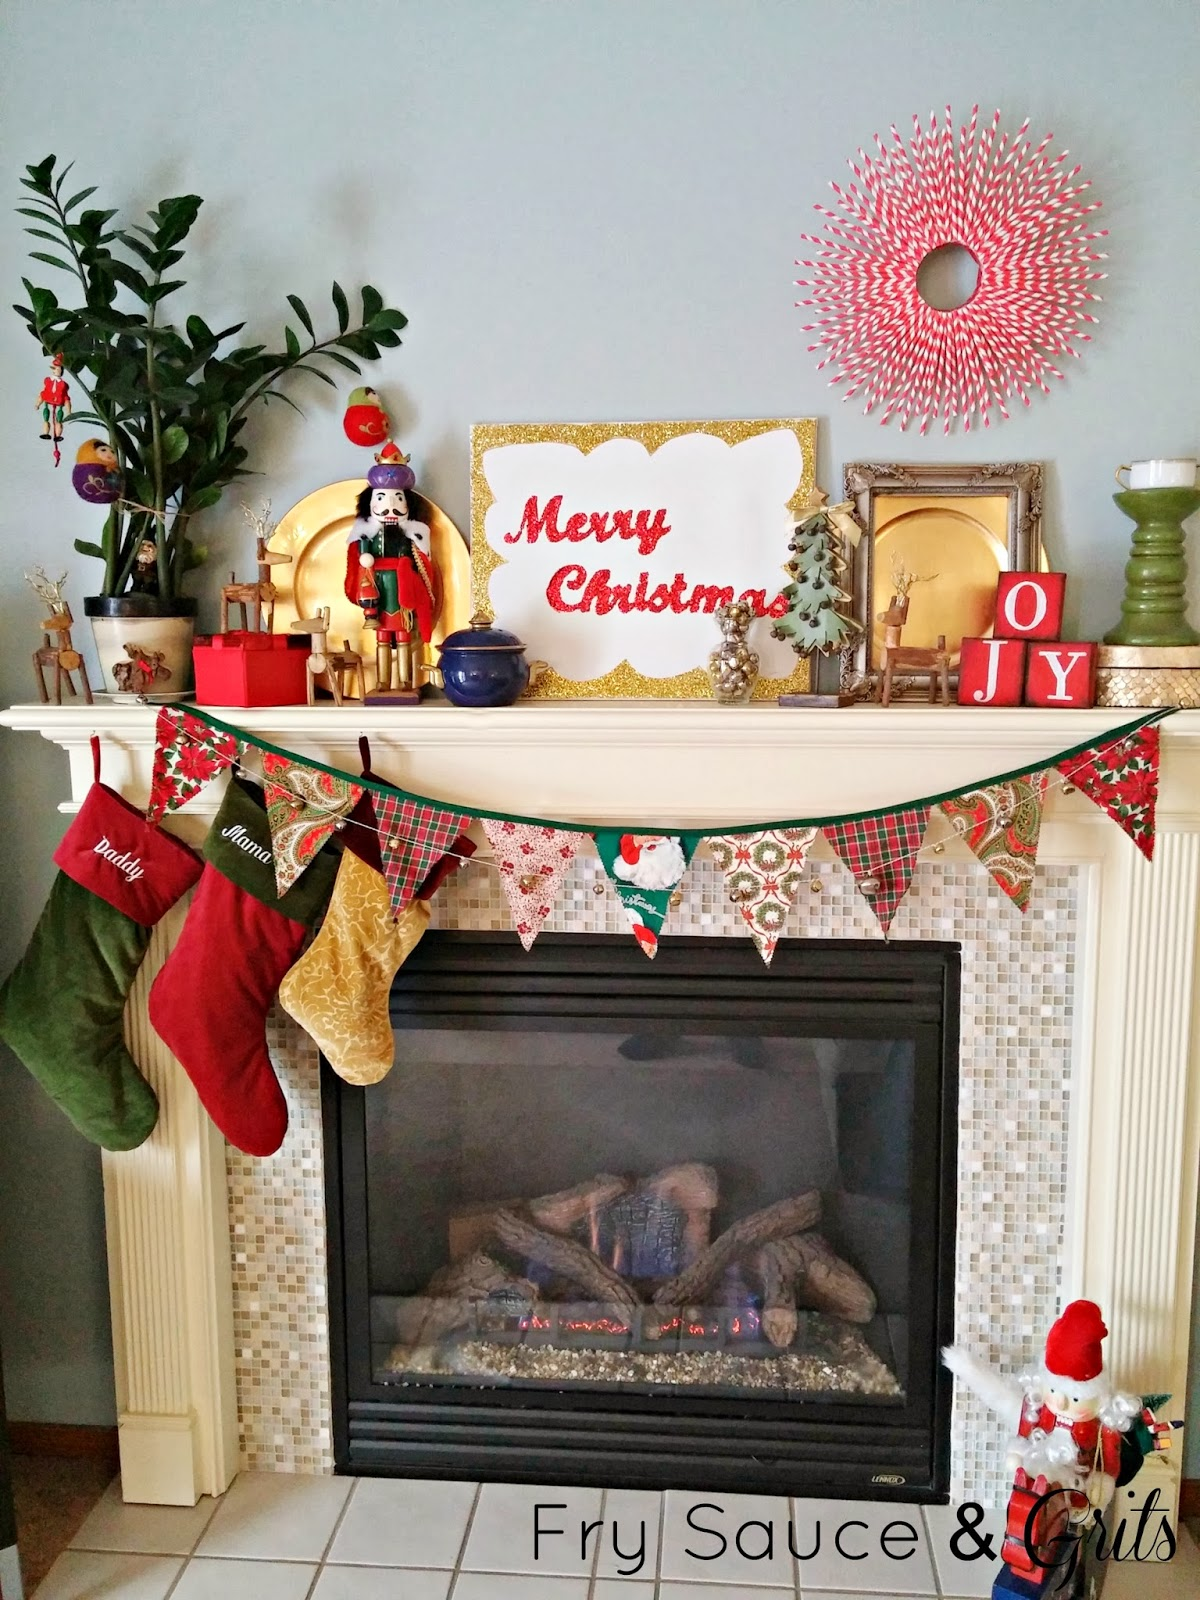 Eclectic Christmas Decor from Fry Sauce and Grits